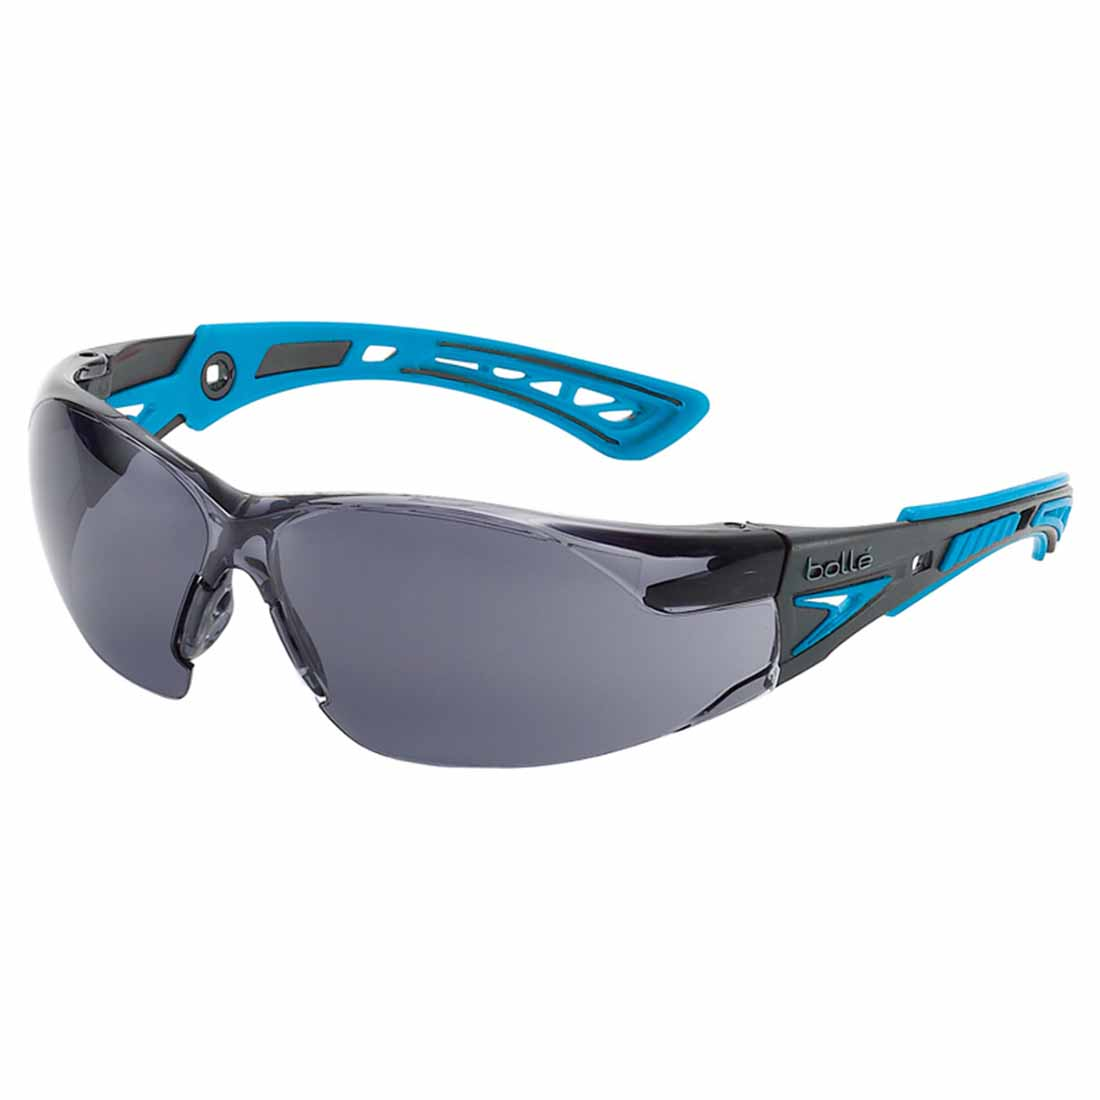 Safety Rush Plus Safety Glasses Smoke Lens Blue/Black Arms